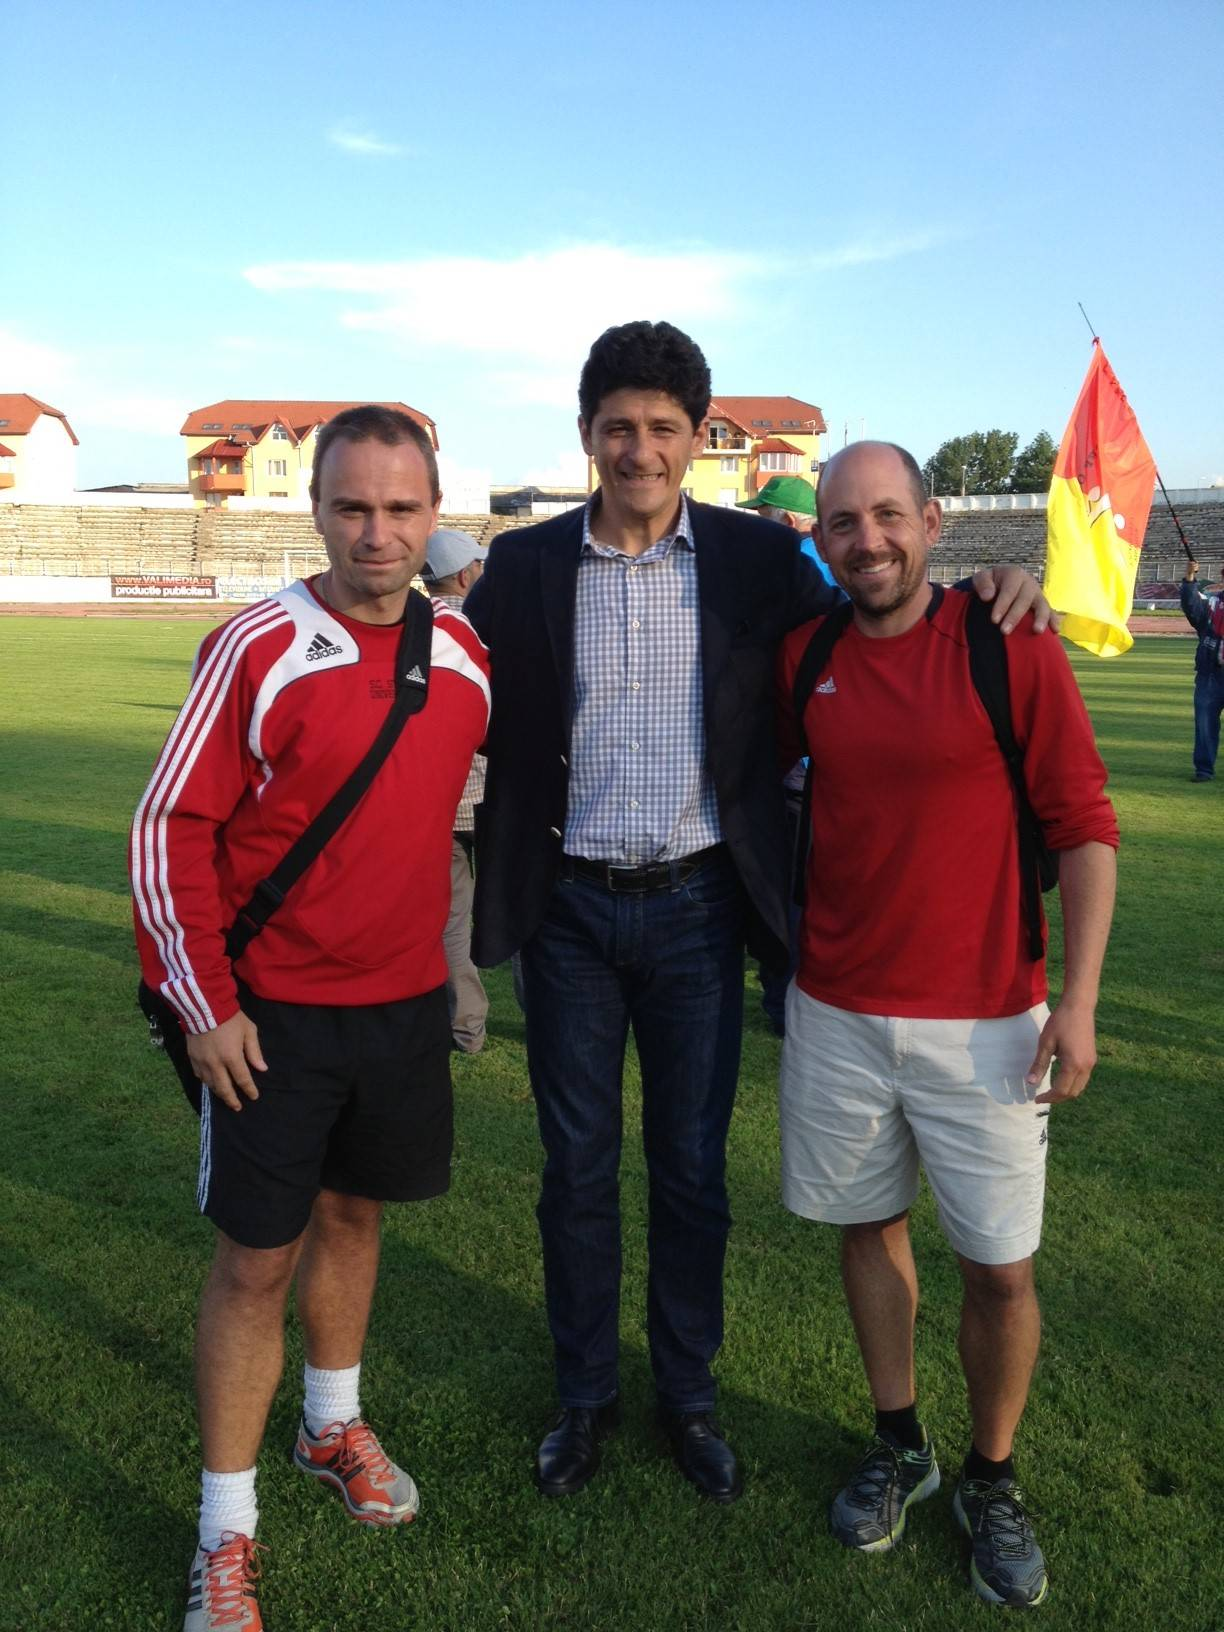 With Miodrag Belodedici and Chris Shaw